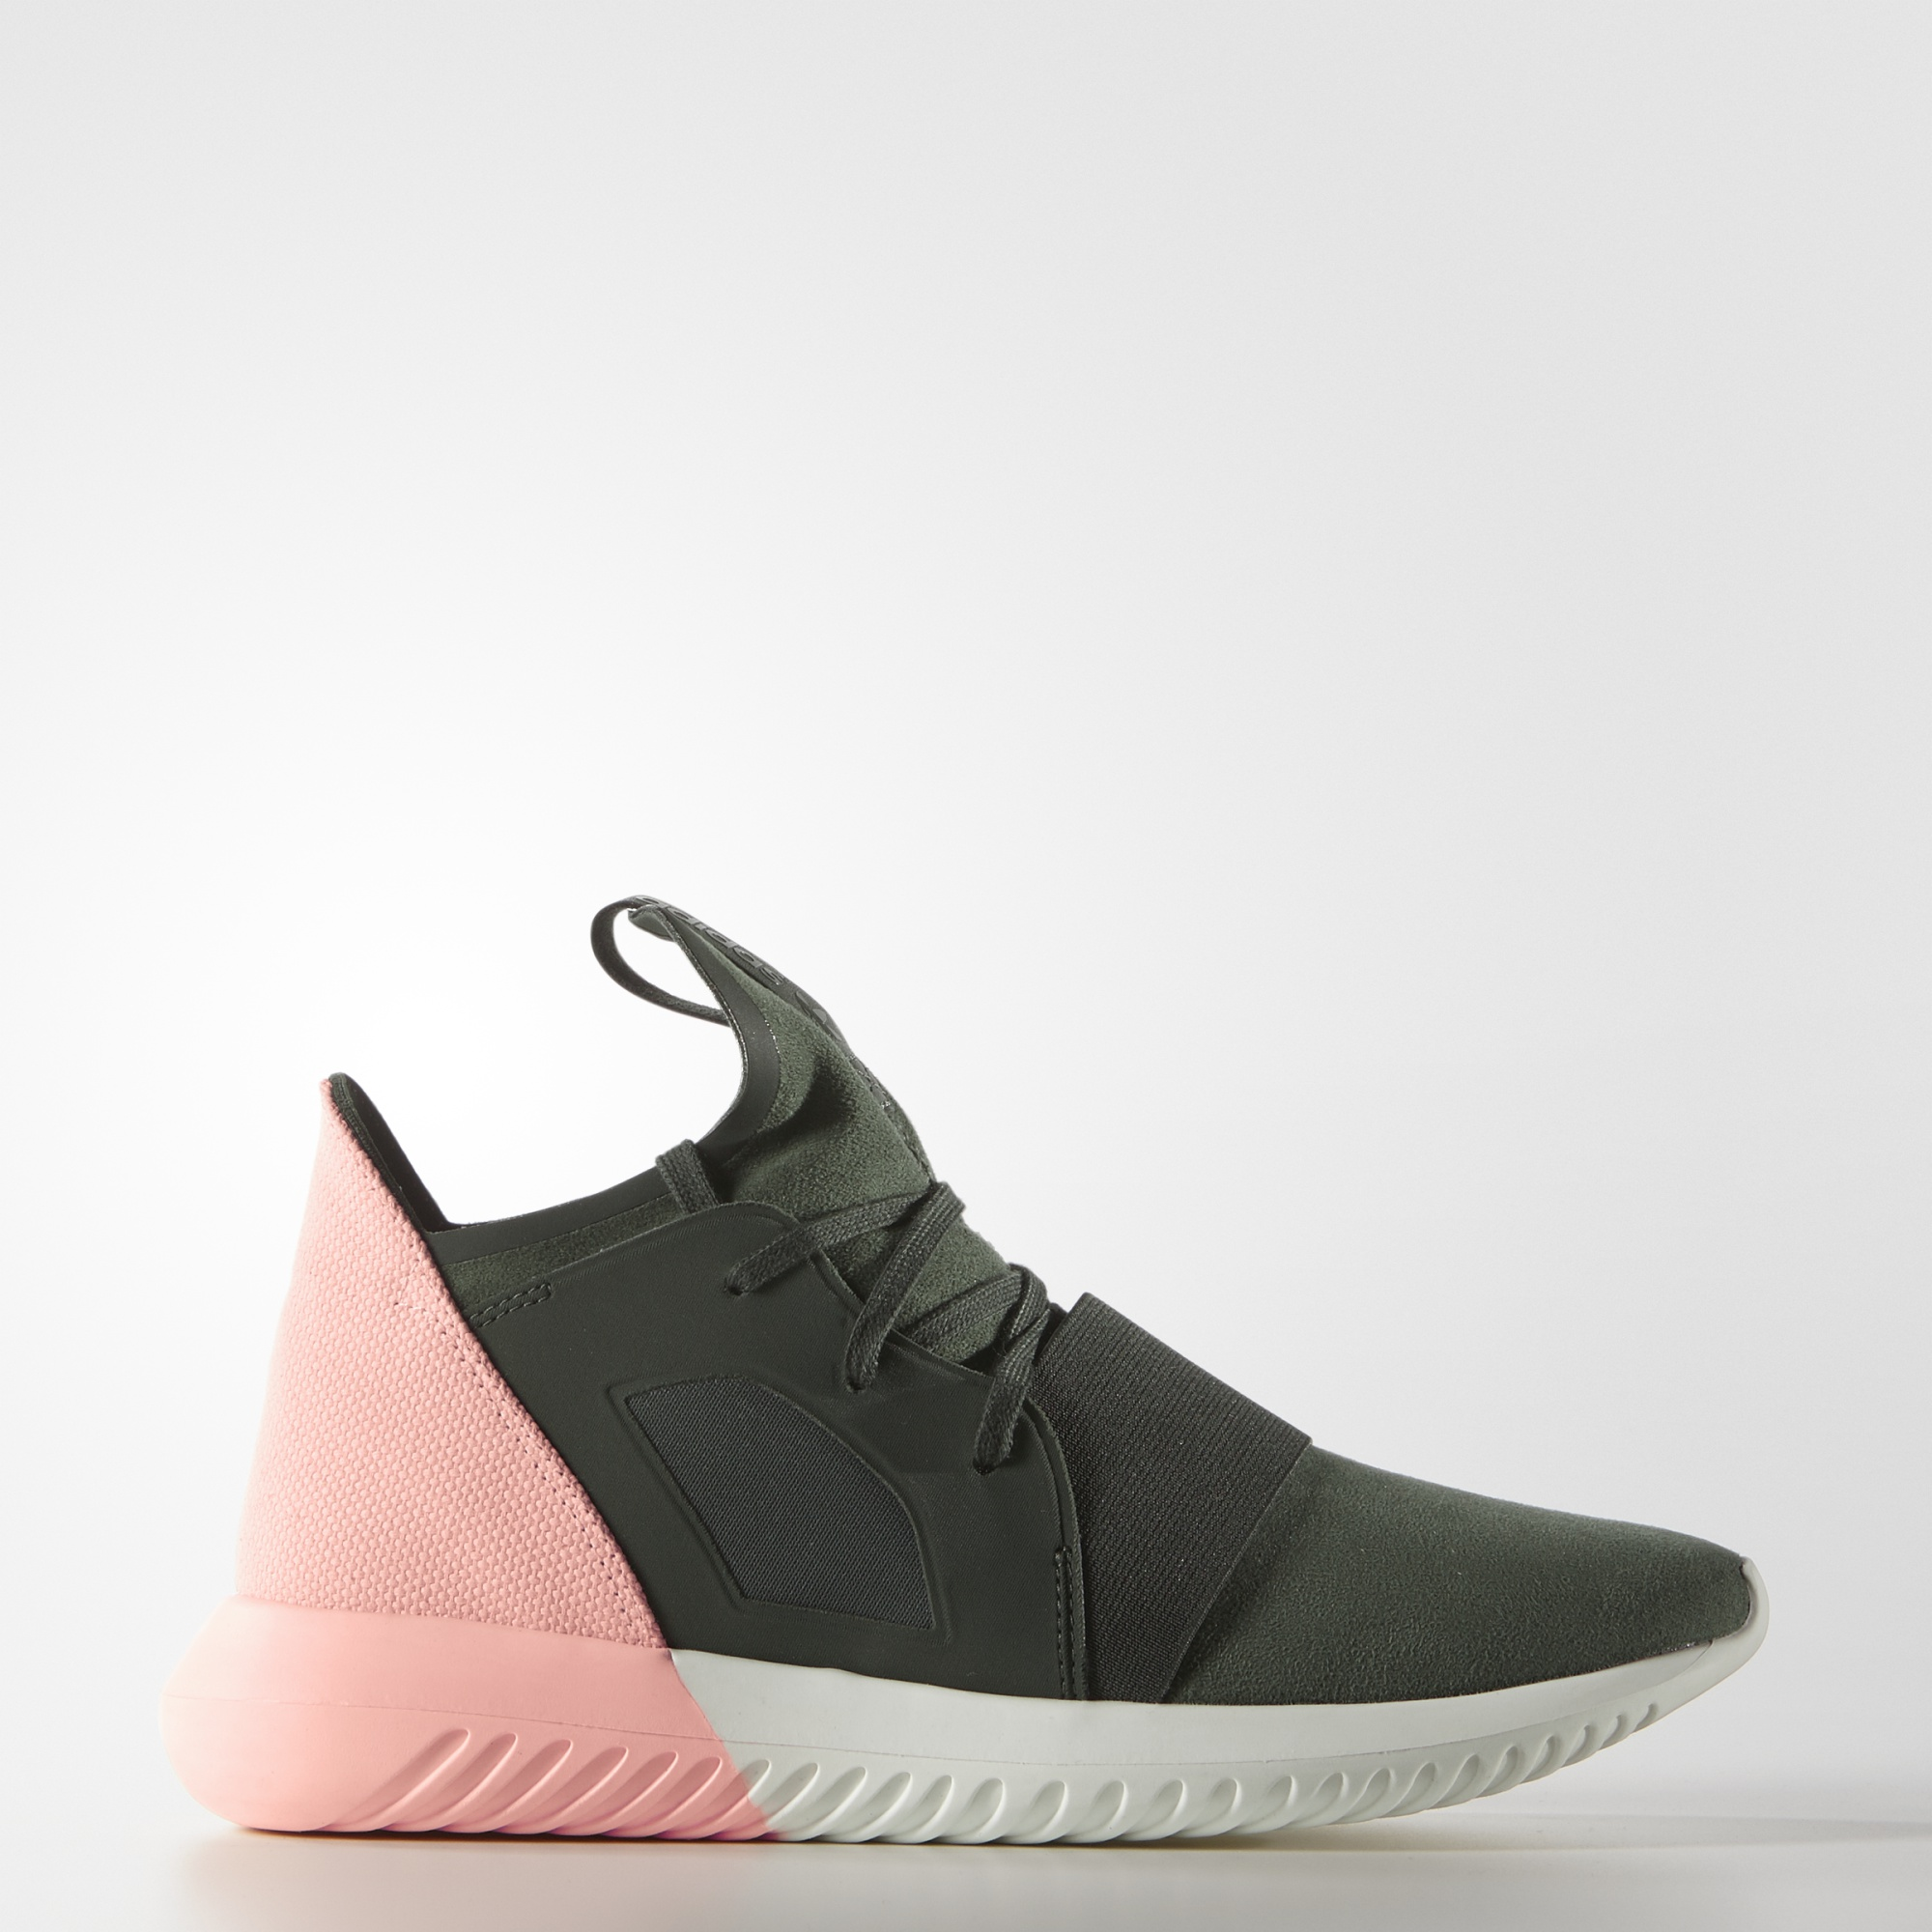 Adidas Originals Tubular Nova PK 'Olive' Cheap Tubular Defiant